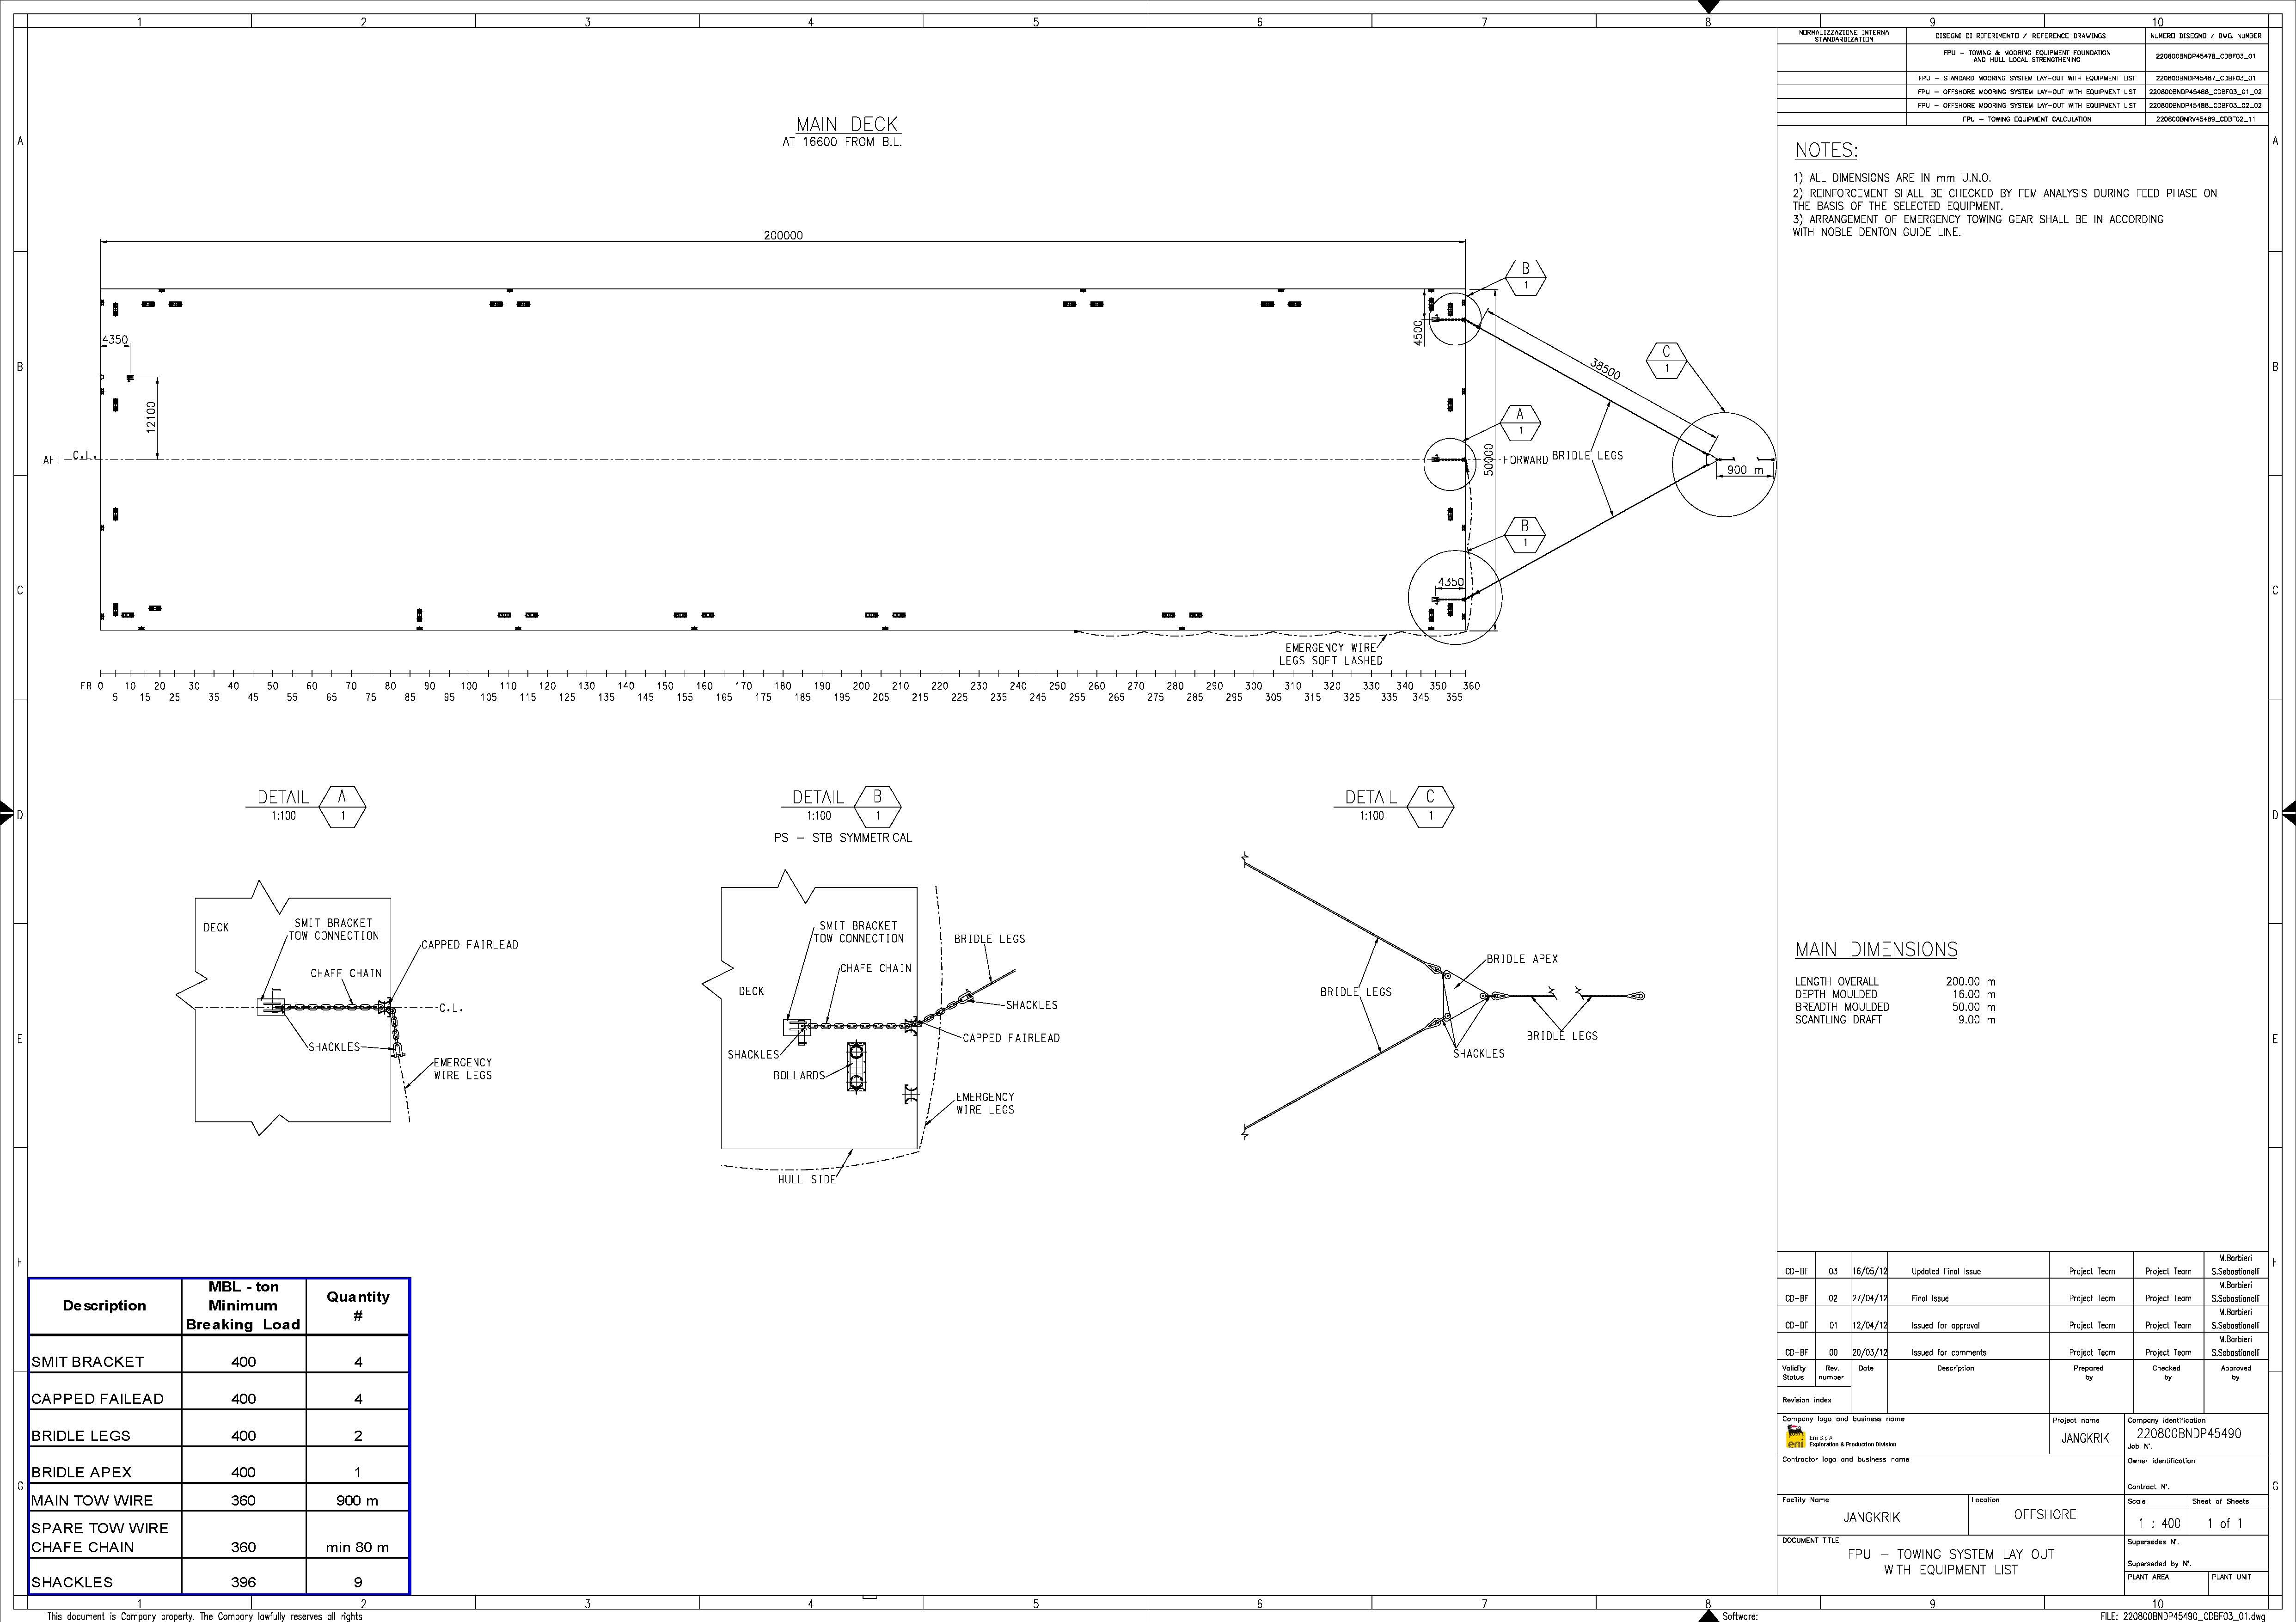 omron relay circuit diagram images ford super duty trailer wiring diagram besides spaceship concept art